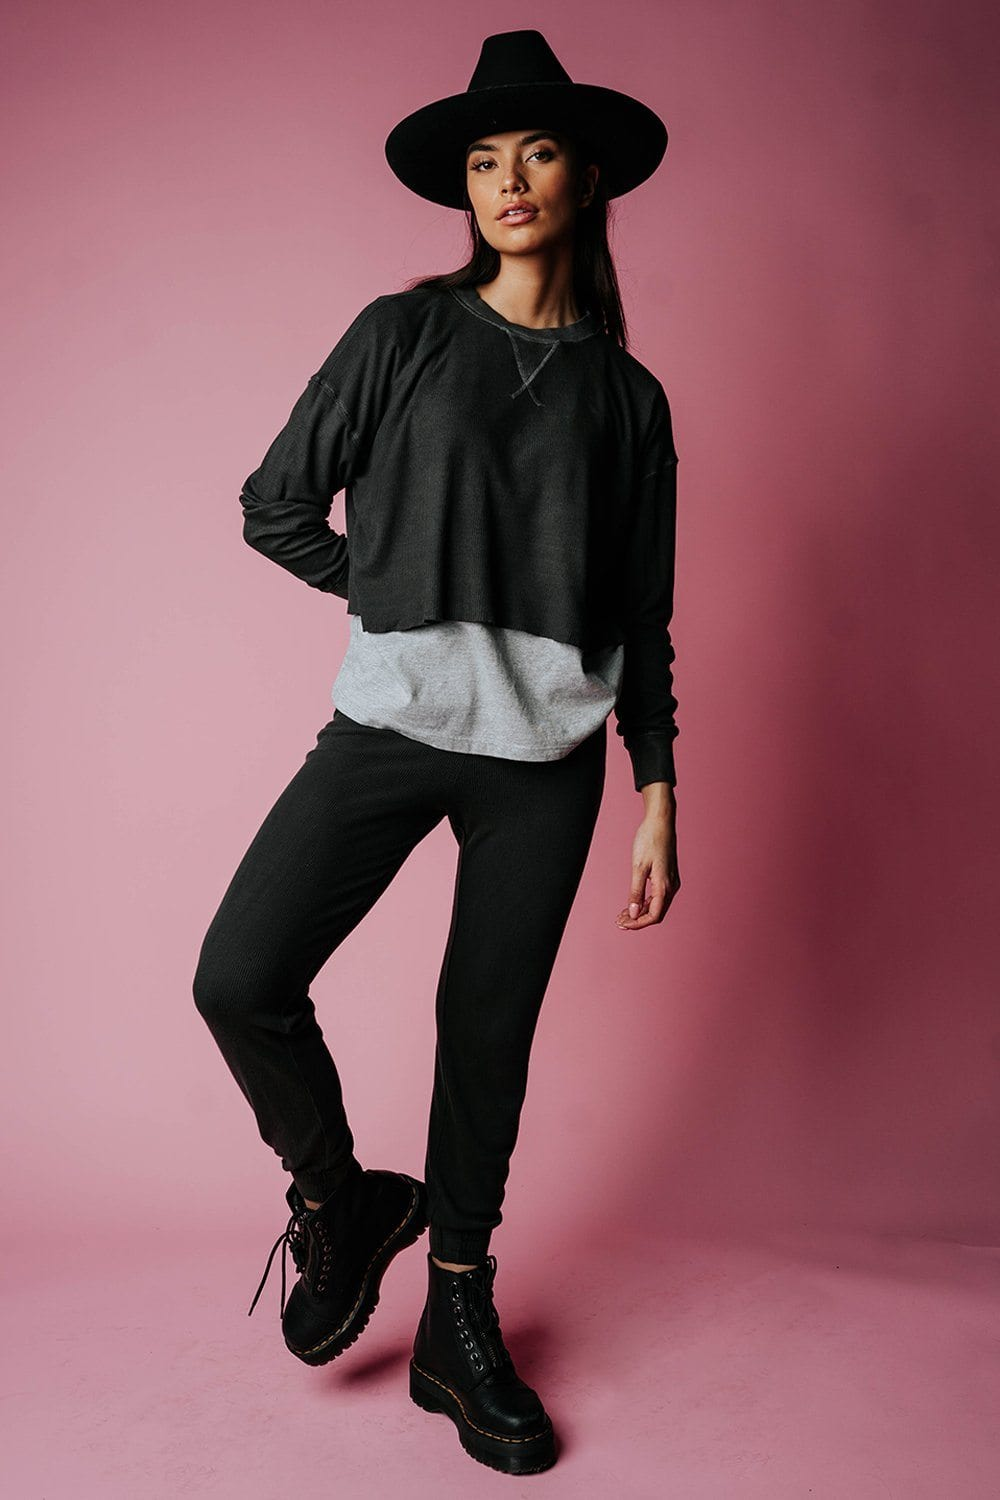 The Rickie Pullover in Charcoal Top n/a Clad and Cloth